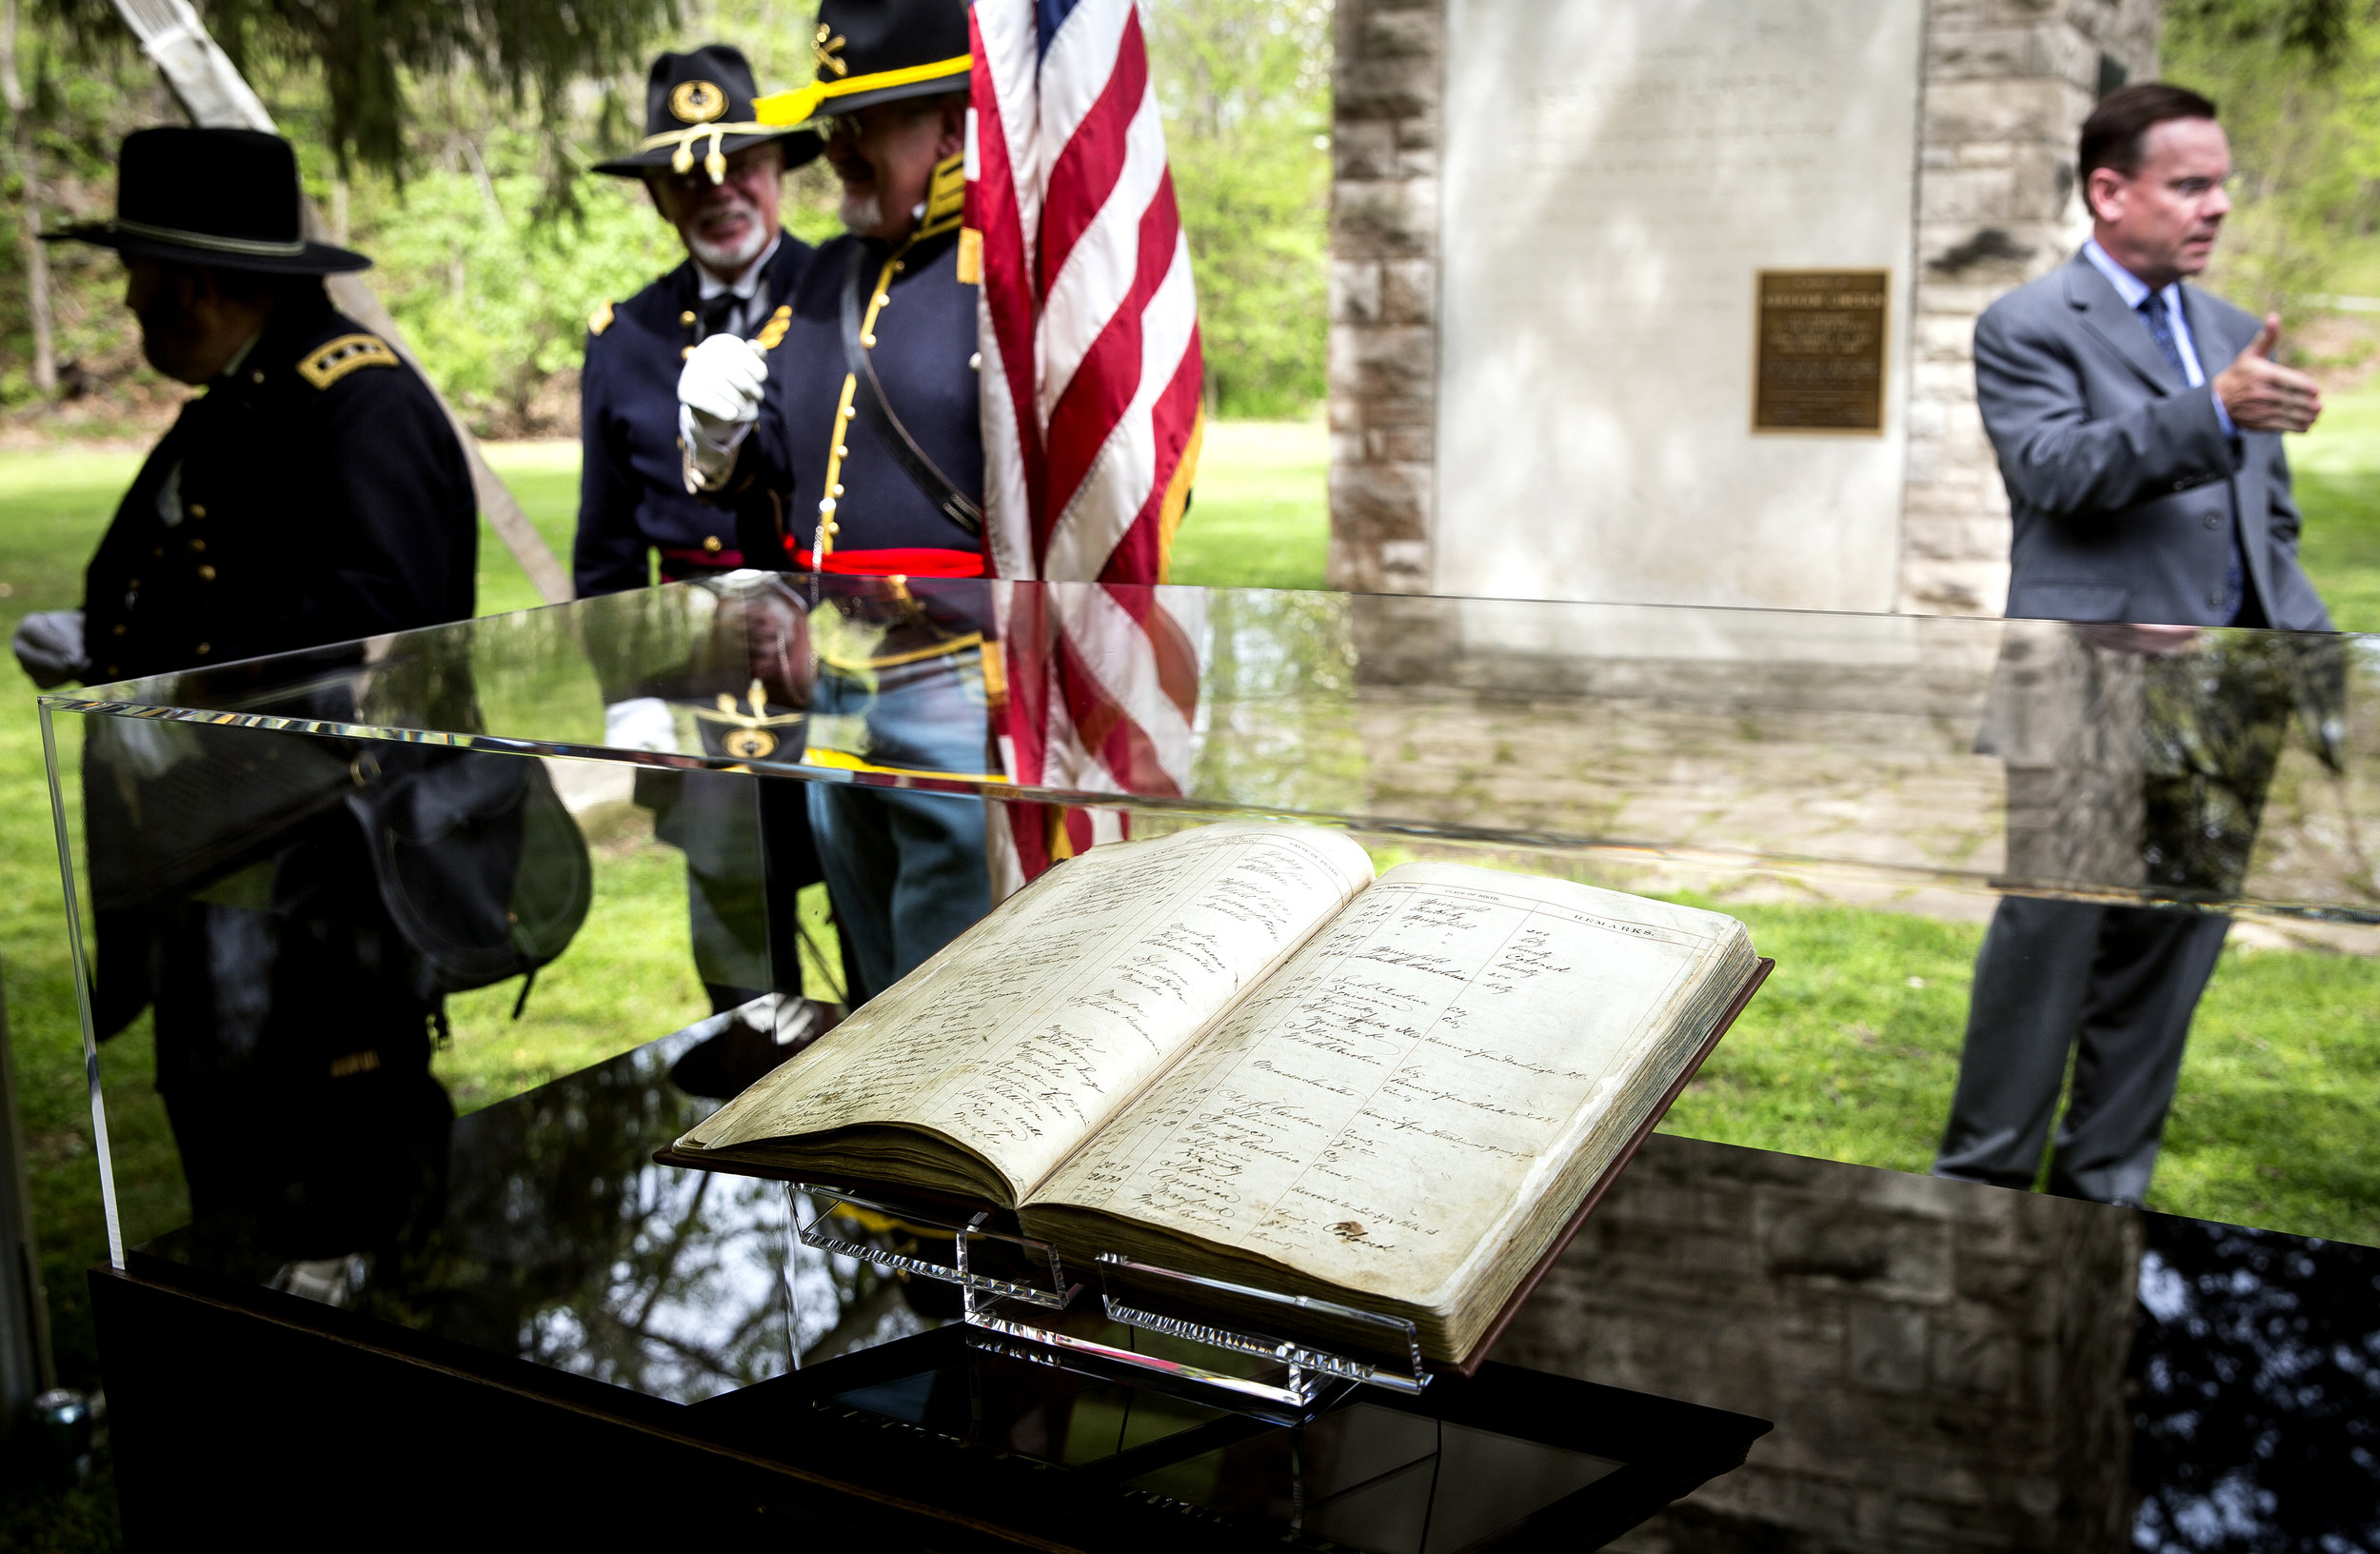 The first book kept by Oak Ridge Cemetery that recorded burials, including Abraham Lincoln and his son, Willie, has been restored and was unveiled during a ceremony Friday, May 4, 2018 near the bell tower in Oak Ridge Cemetery in Springfield, Ill. The book will eventually be stored at the Abraham Lincoln Presidential Library and Museum. [Rich Saal/The State Journal-Register]